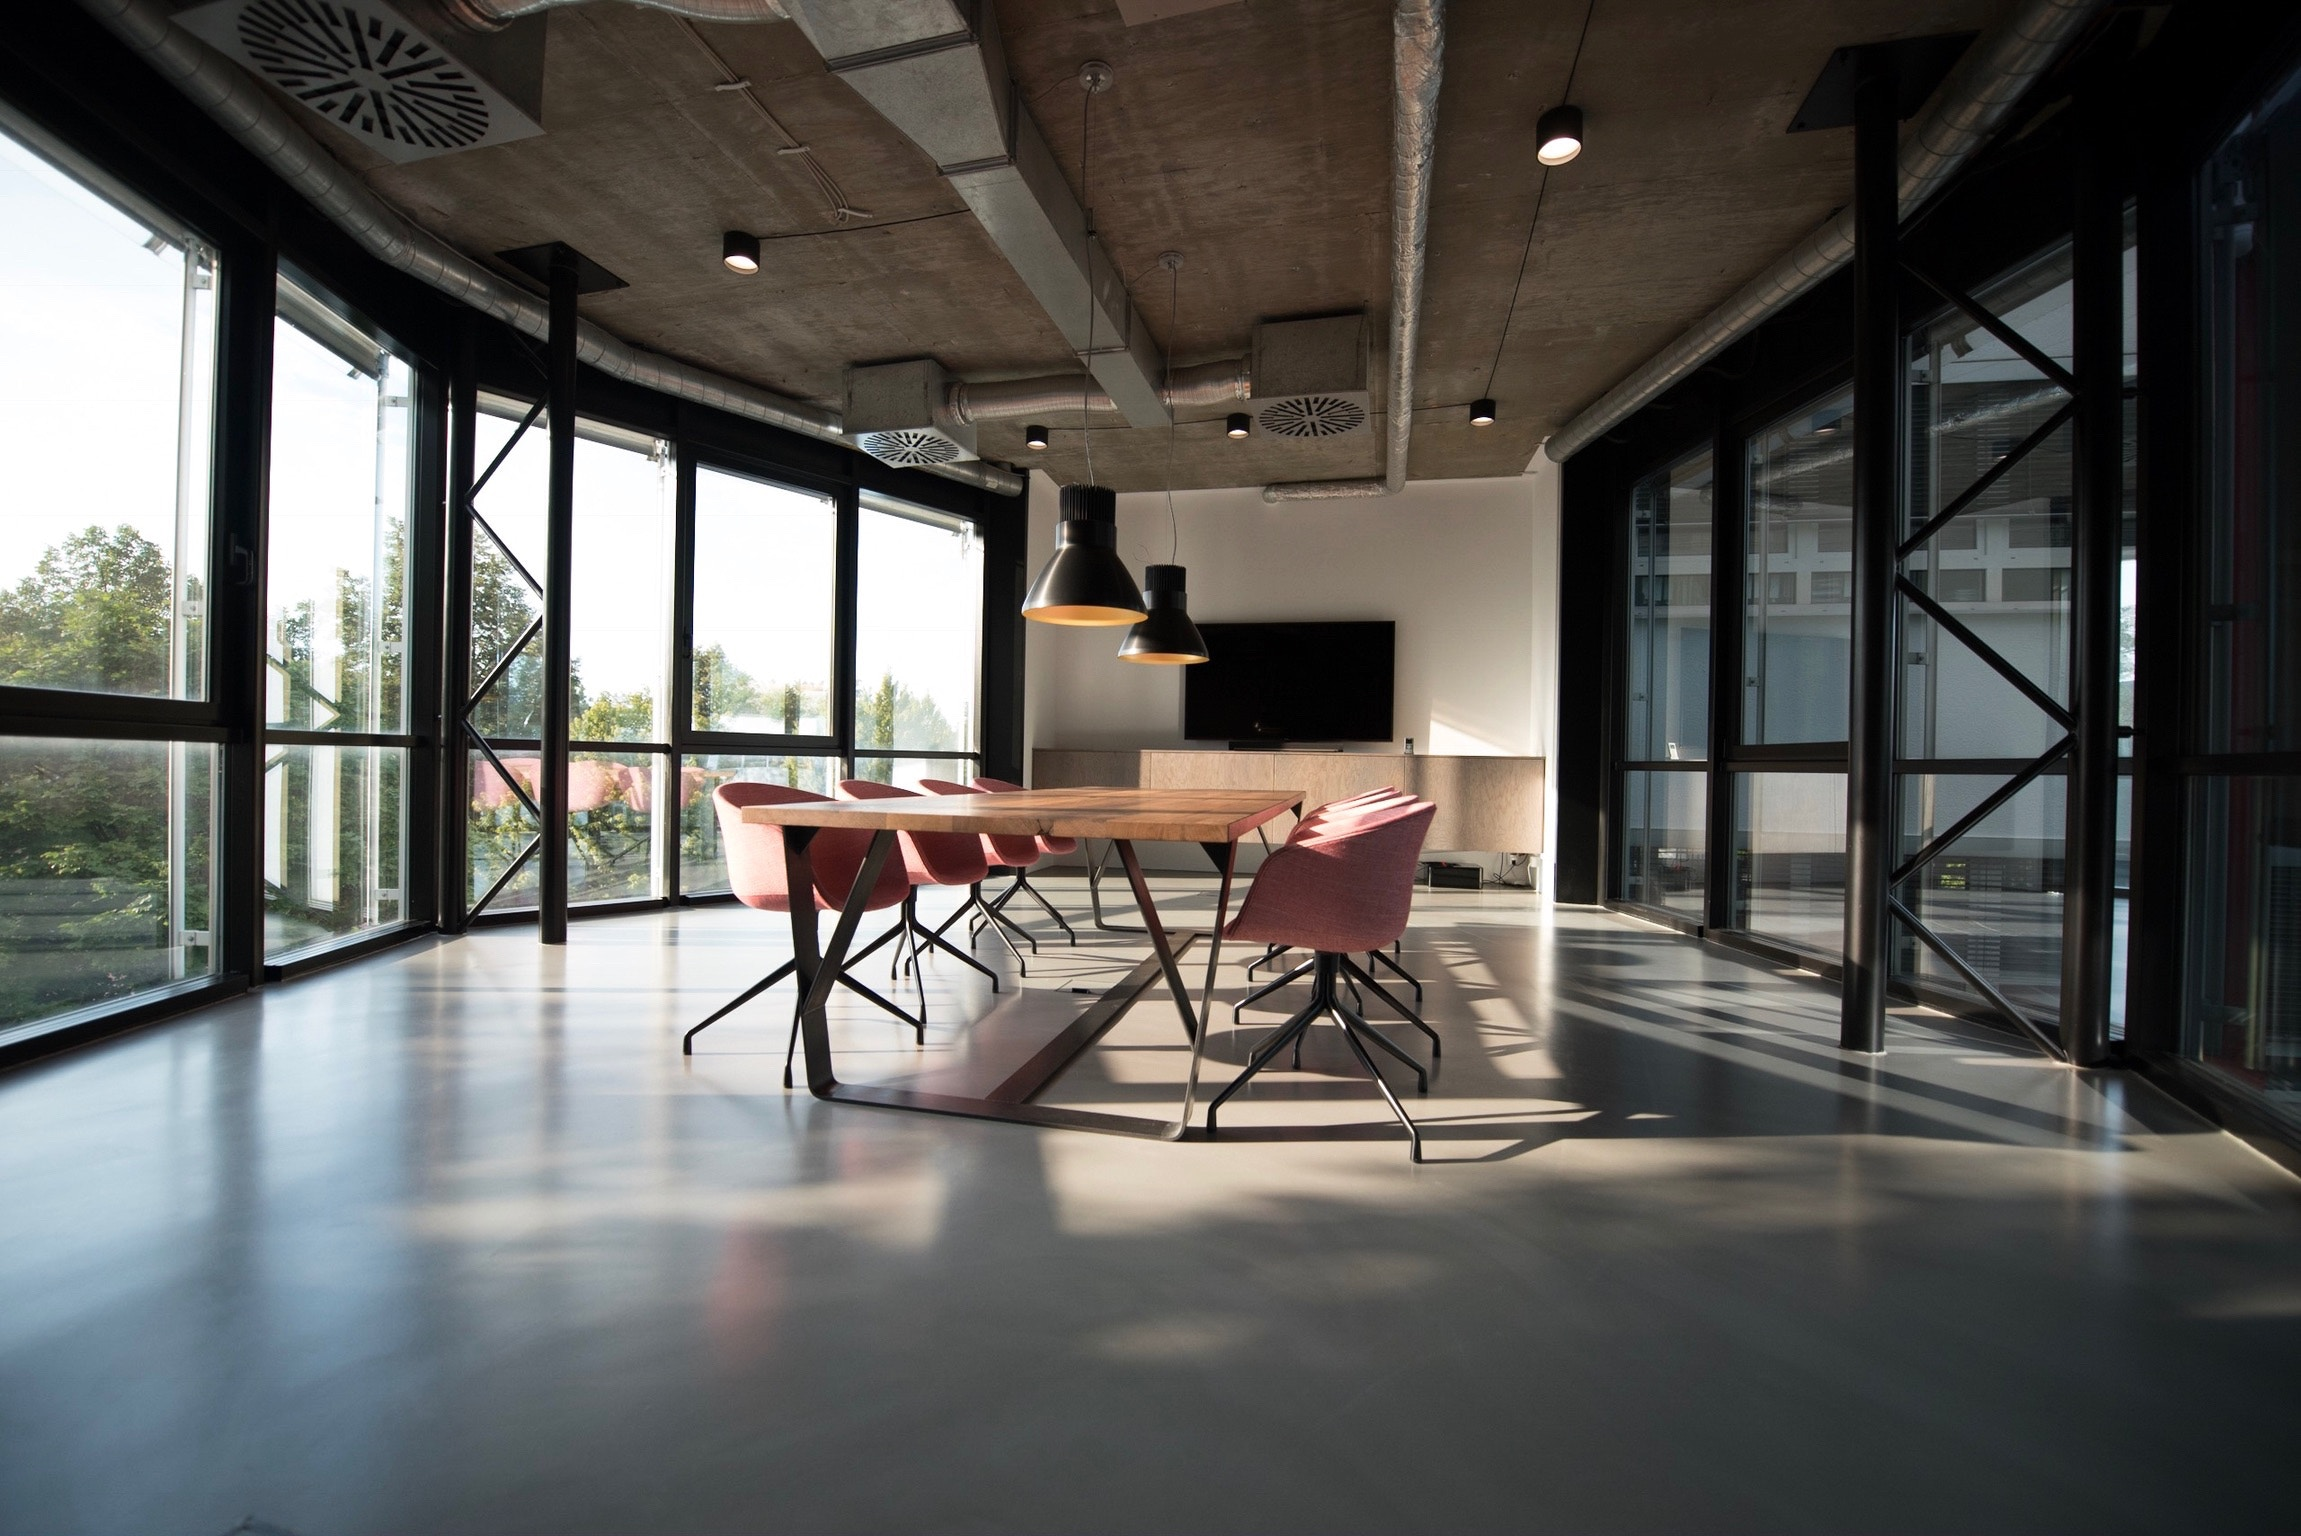 Promoting Wellbeing in the Workplace